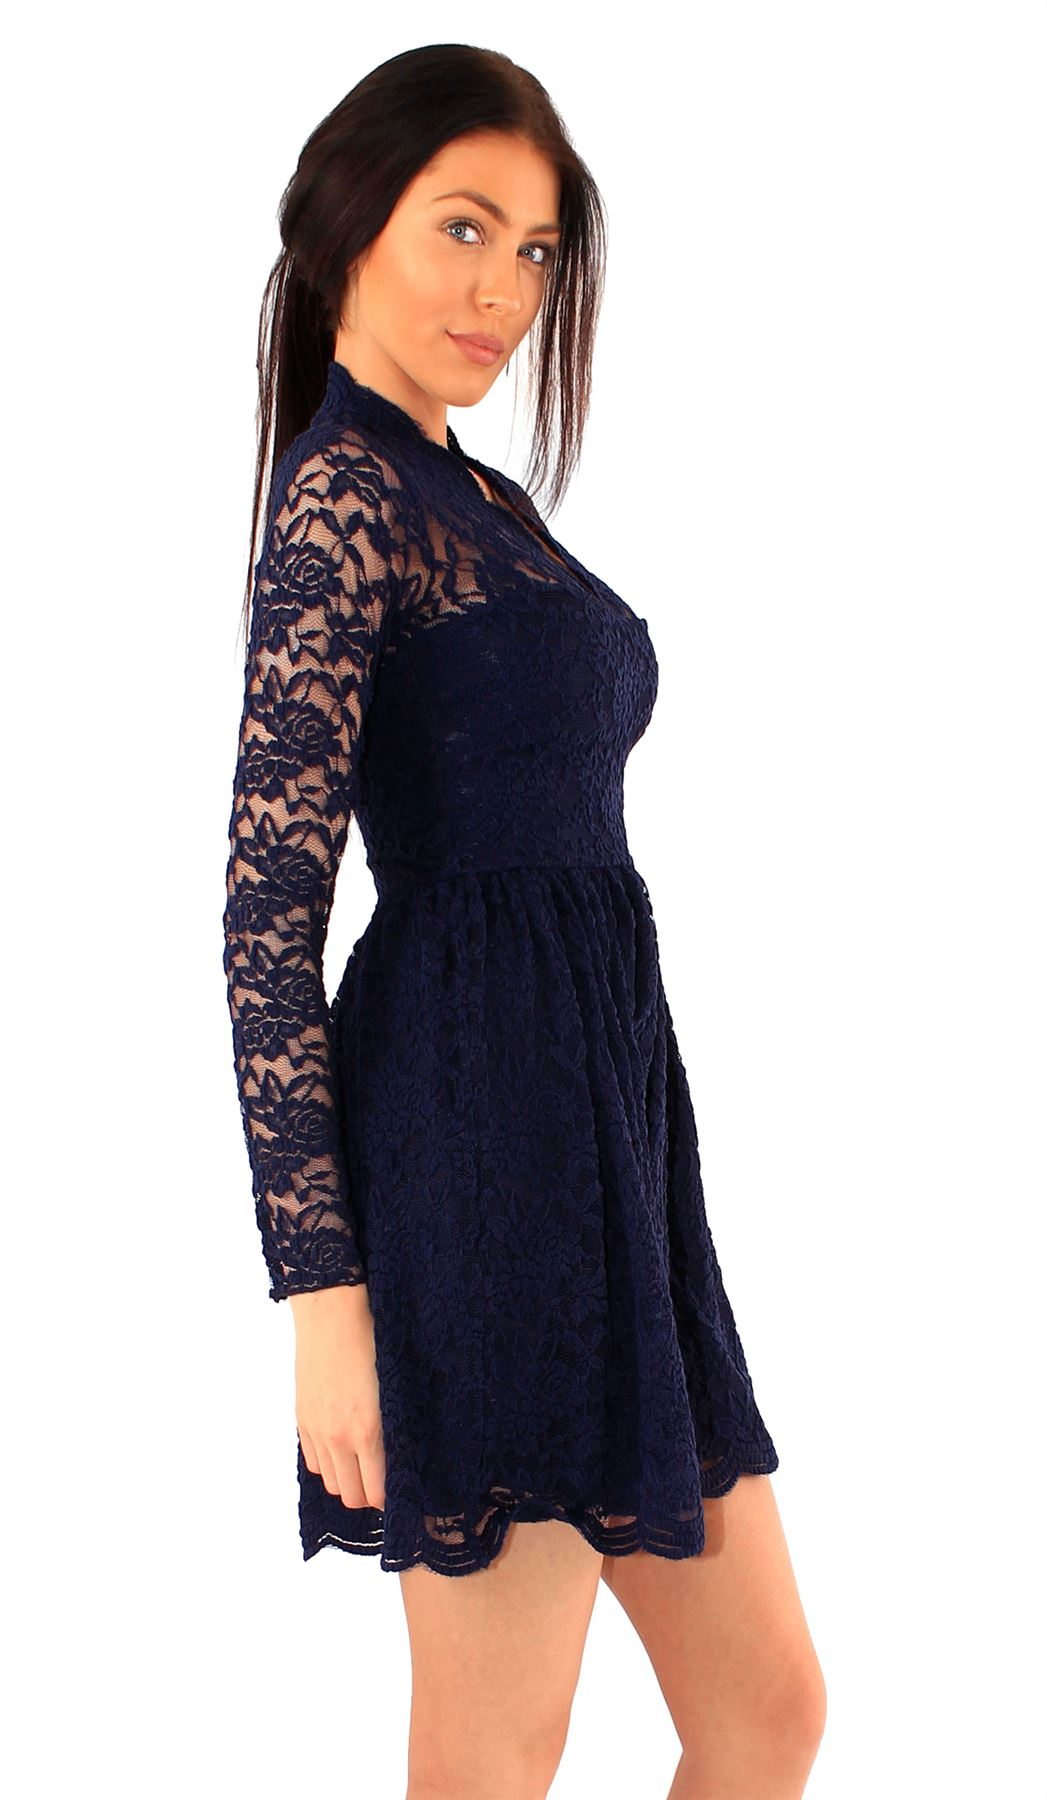 Details About New Womens Long Sleeve Scallop Lace V Front Skater Dress 4 20